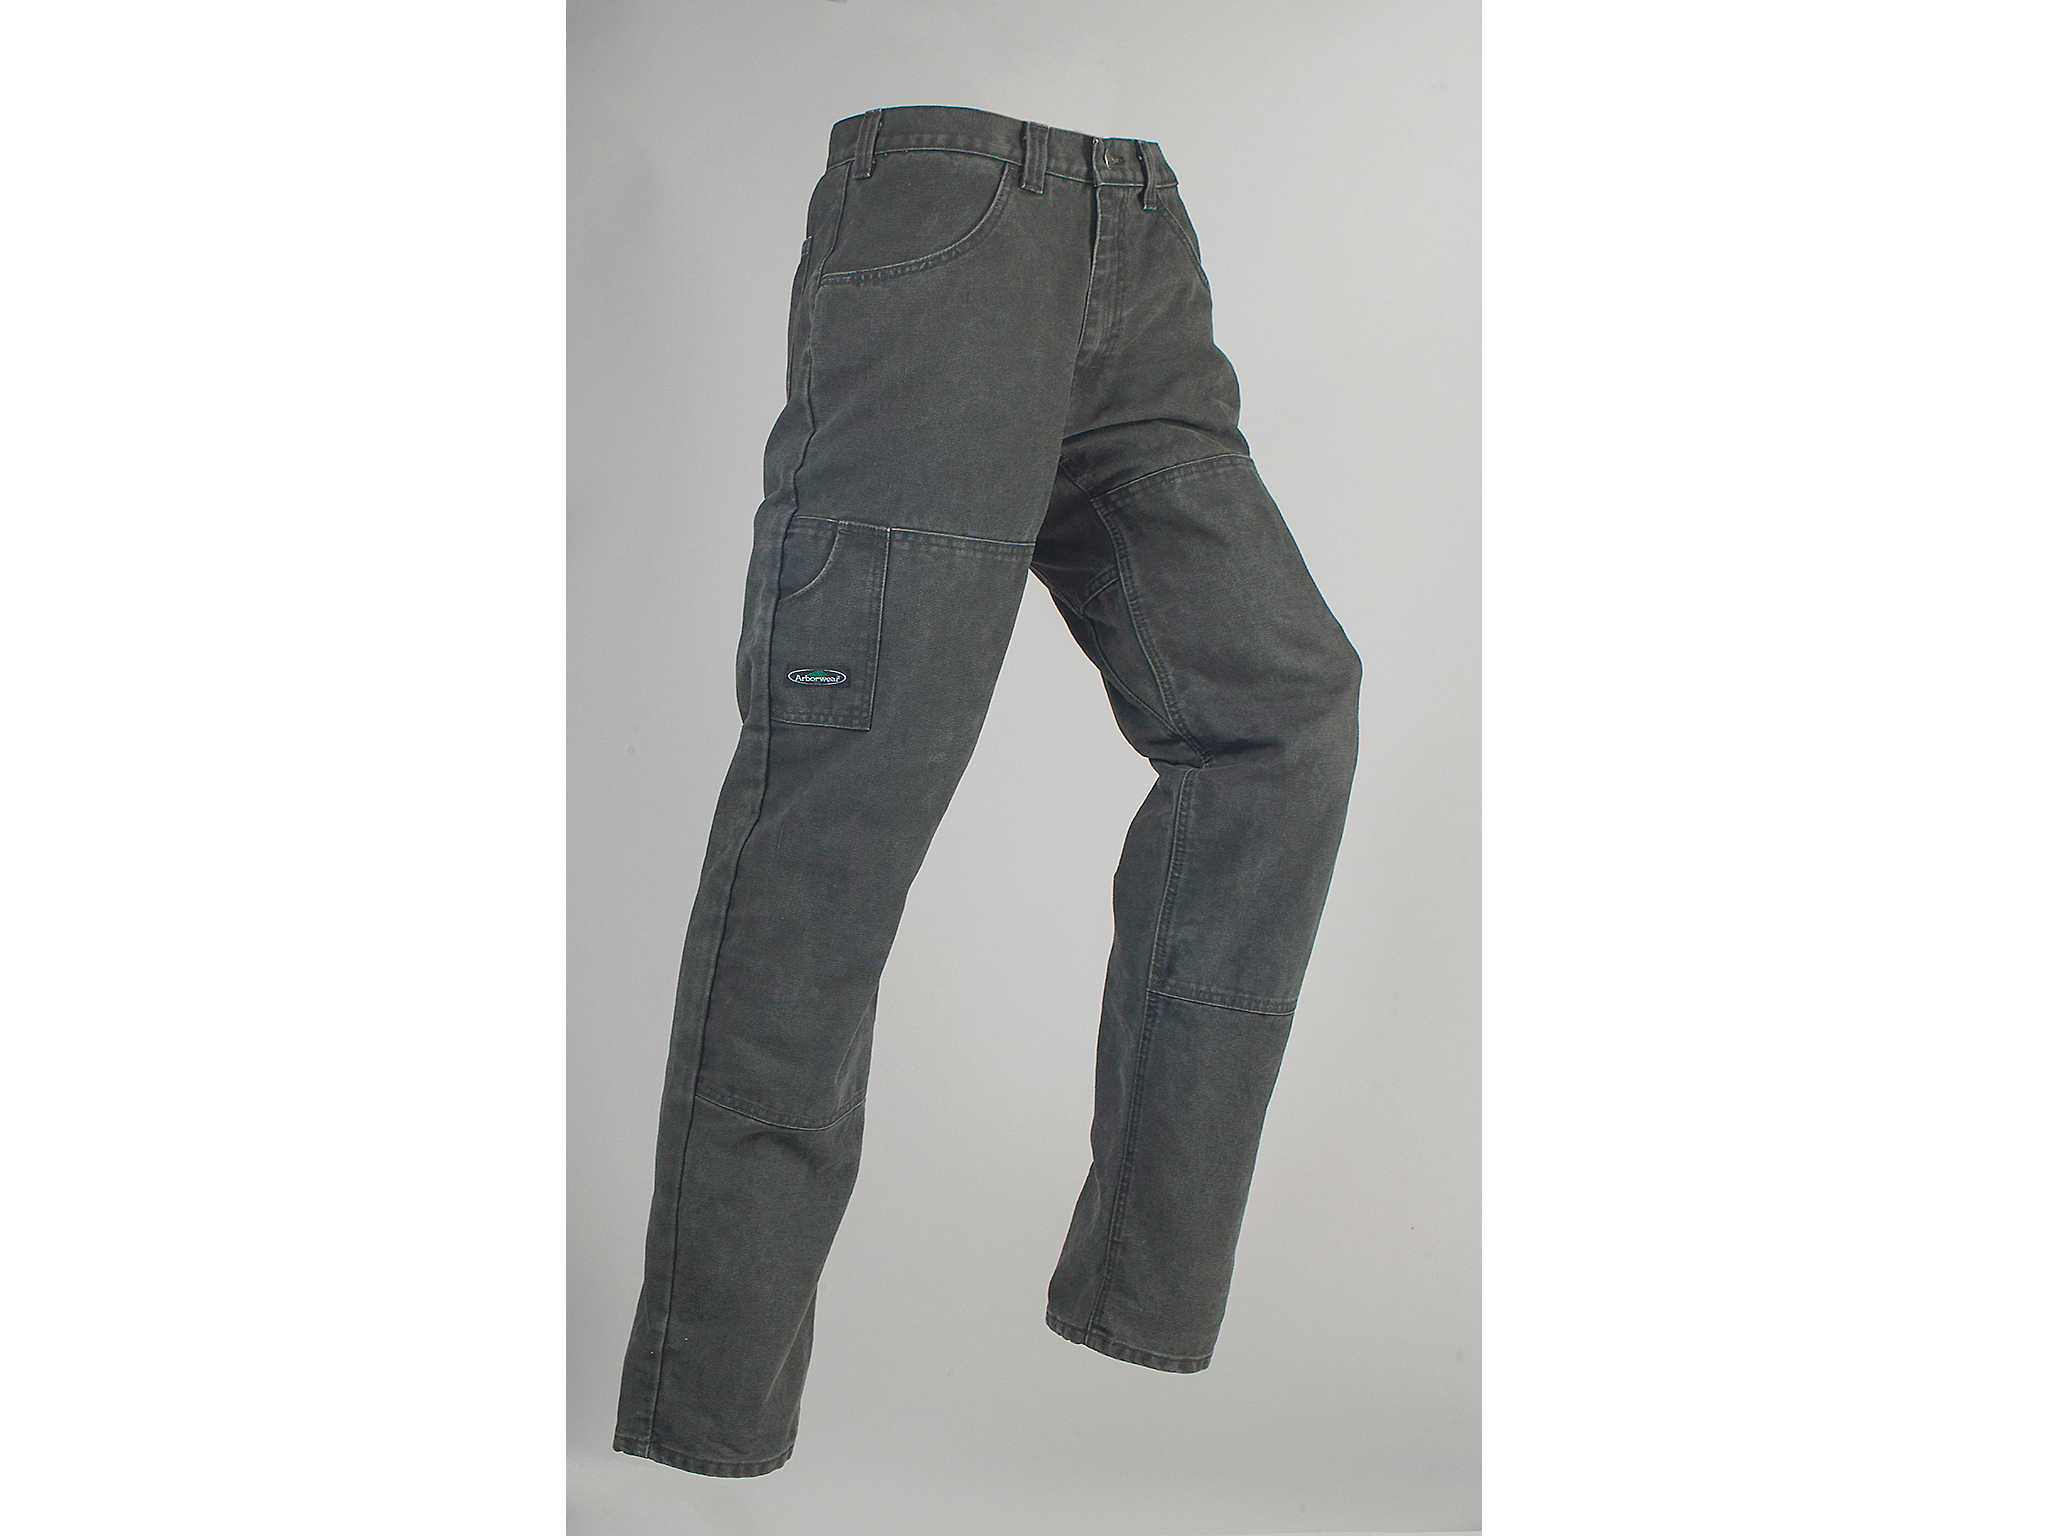 Photo of pants for print catalog